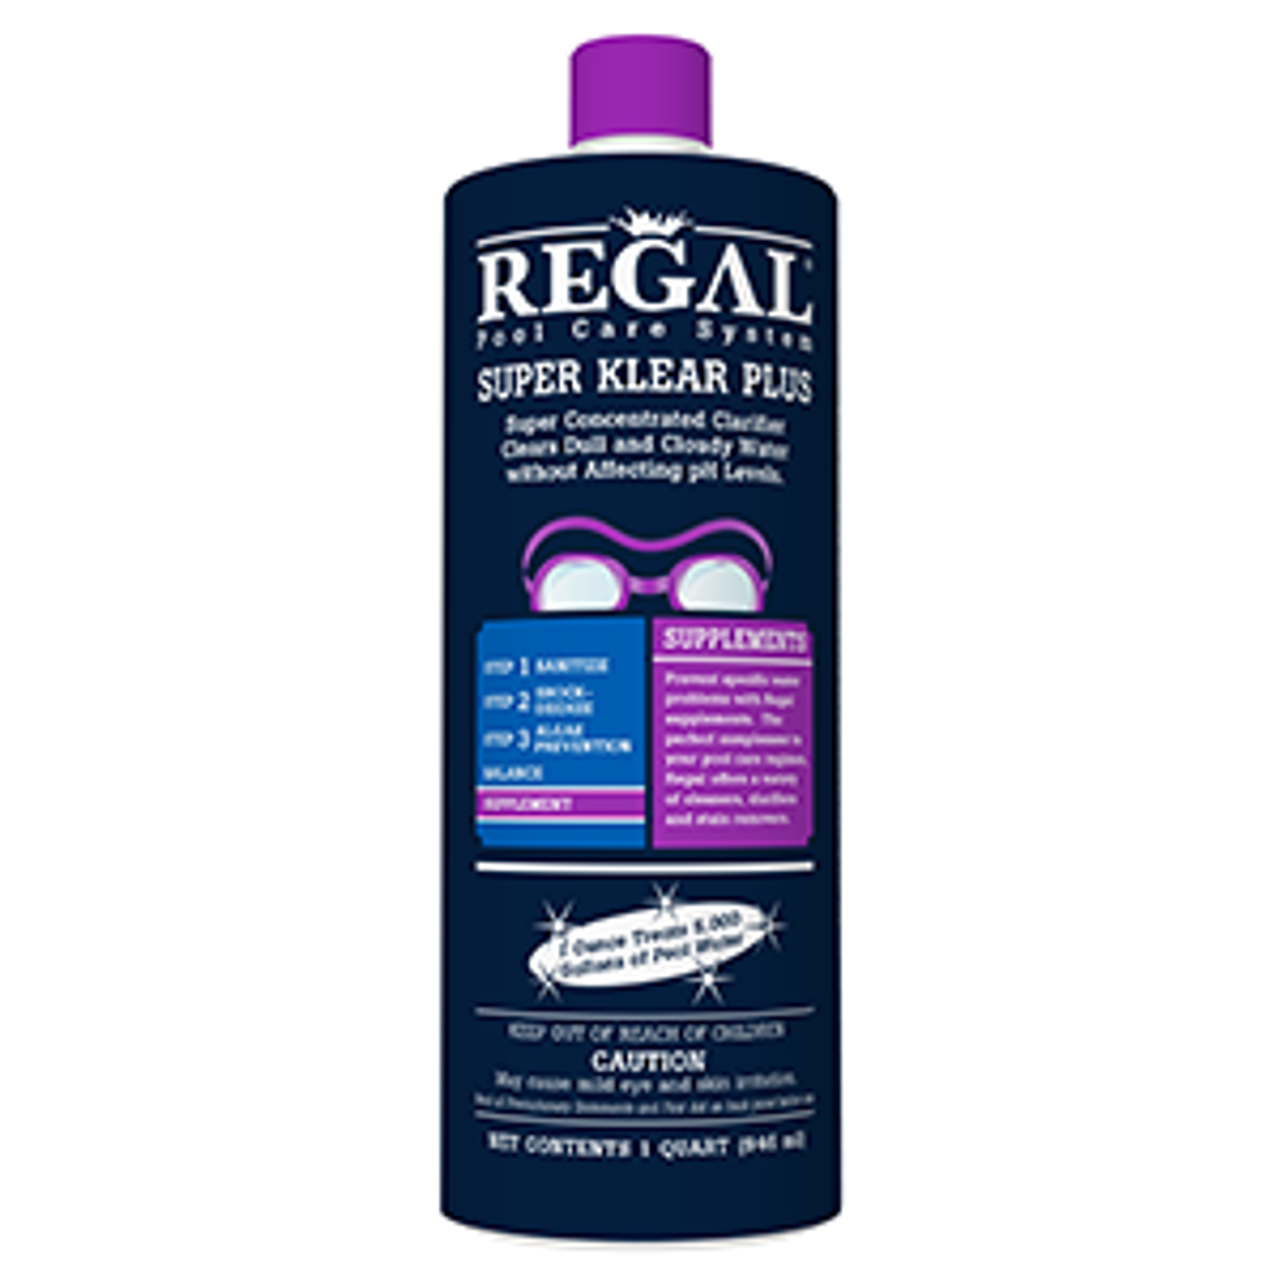 REGAL QT SUPER KLEAR PLUS, FREE SHIPPING, Super Blue